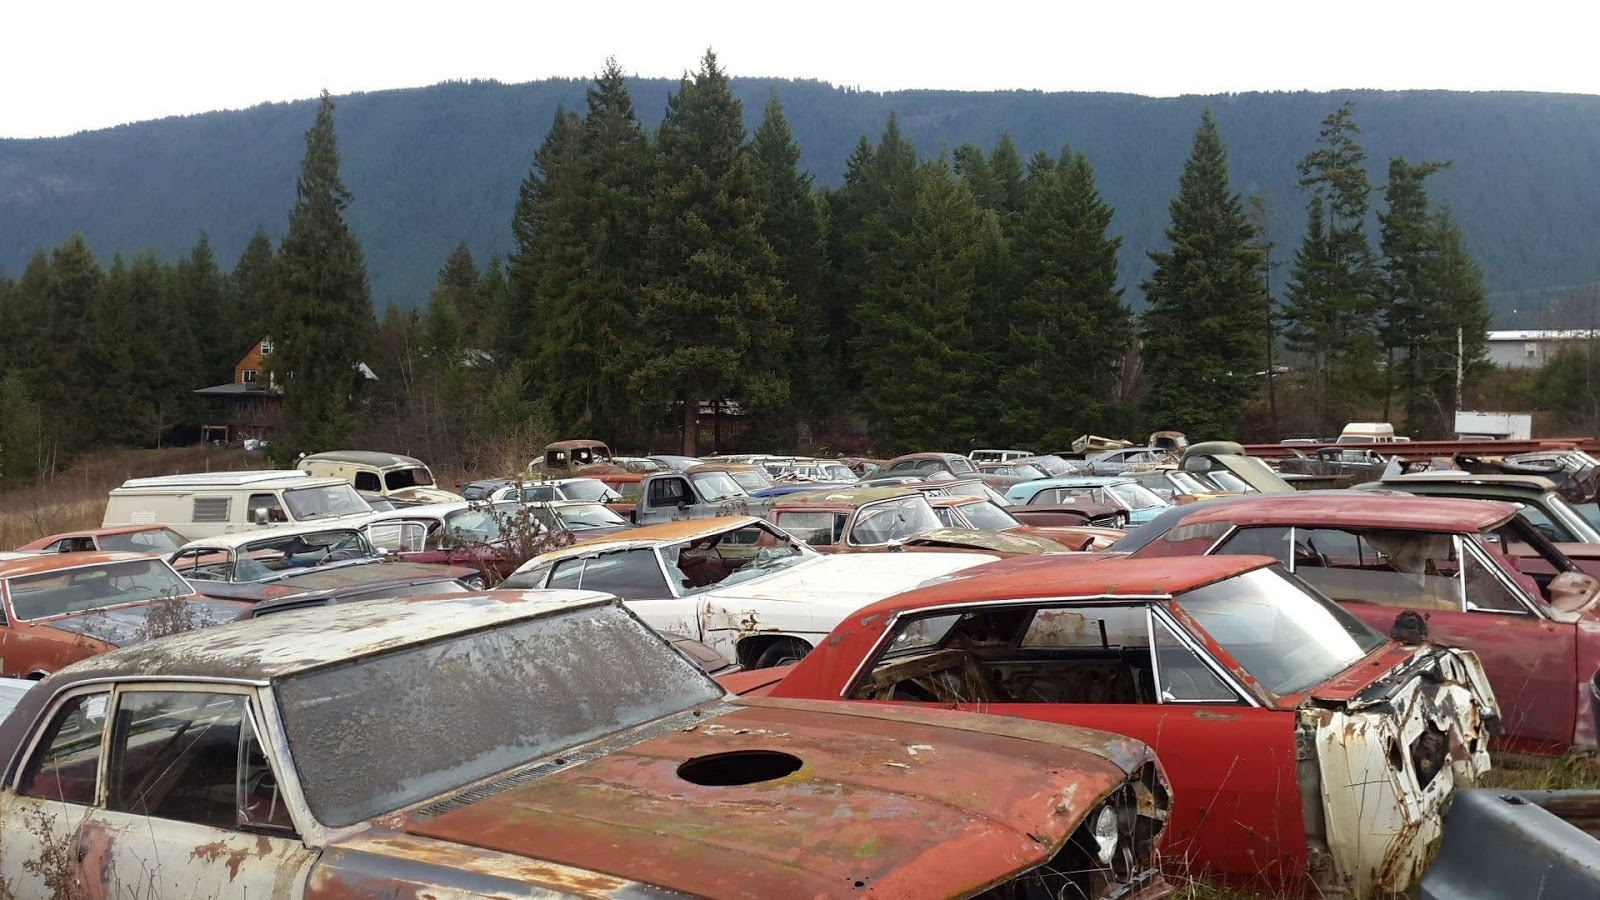 Canadian Man Selling Property With Over 340 Vintage Cars | Carscoops